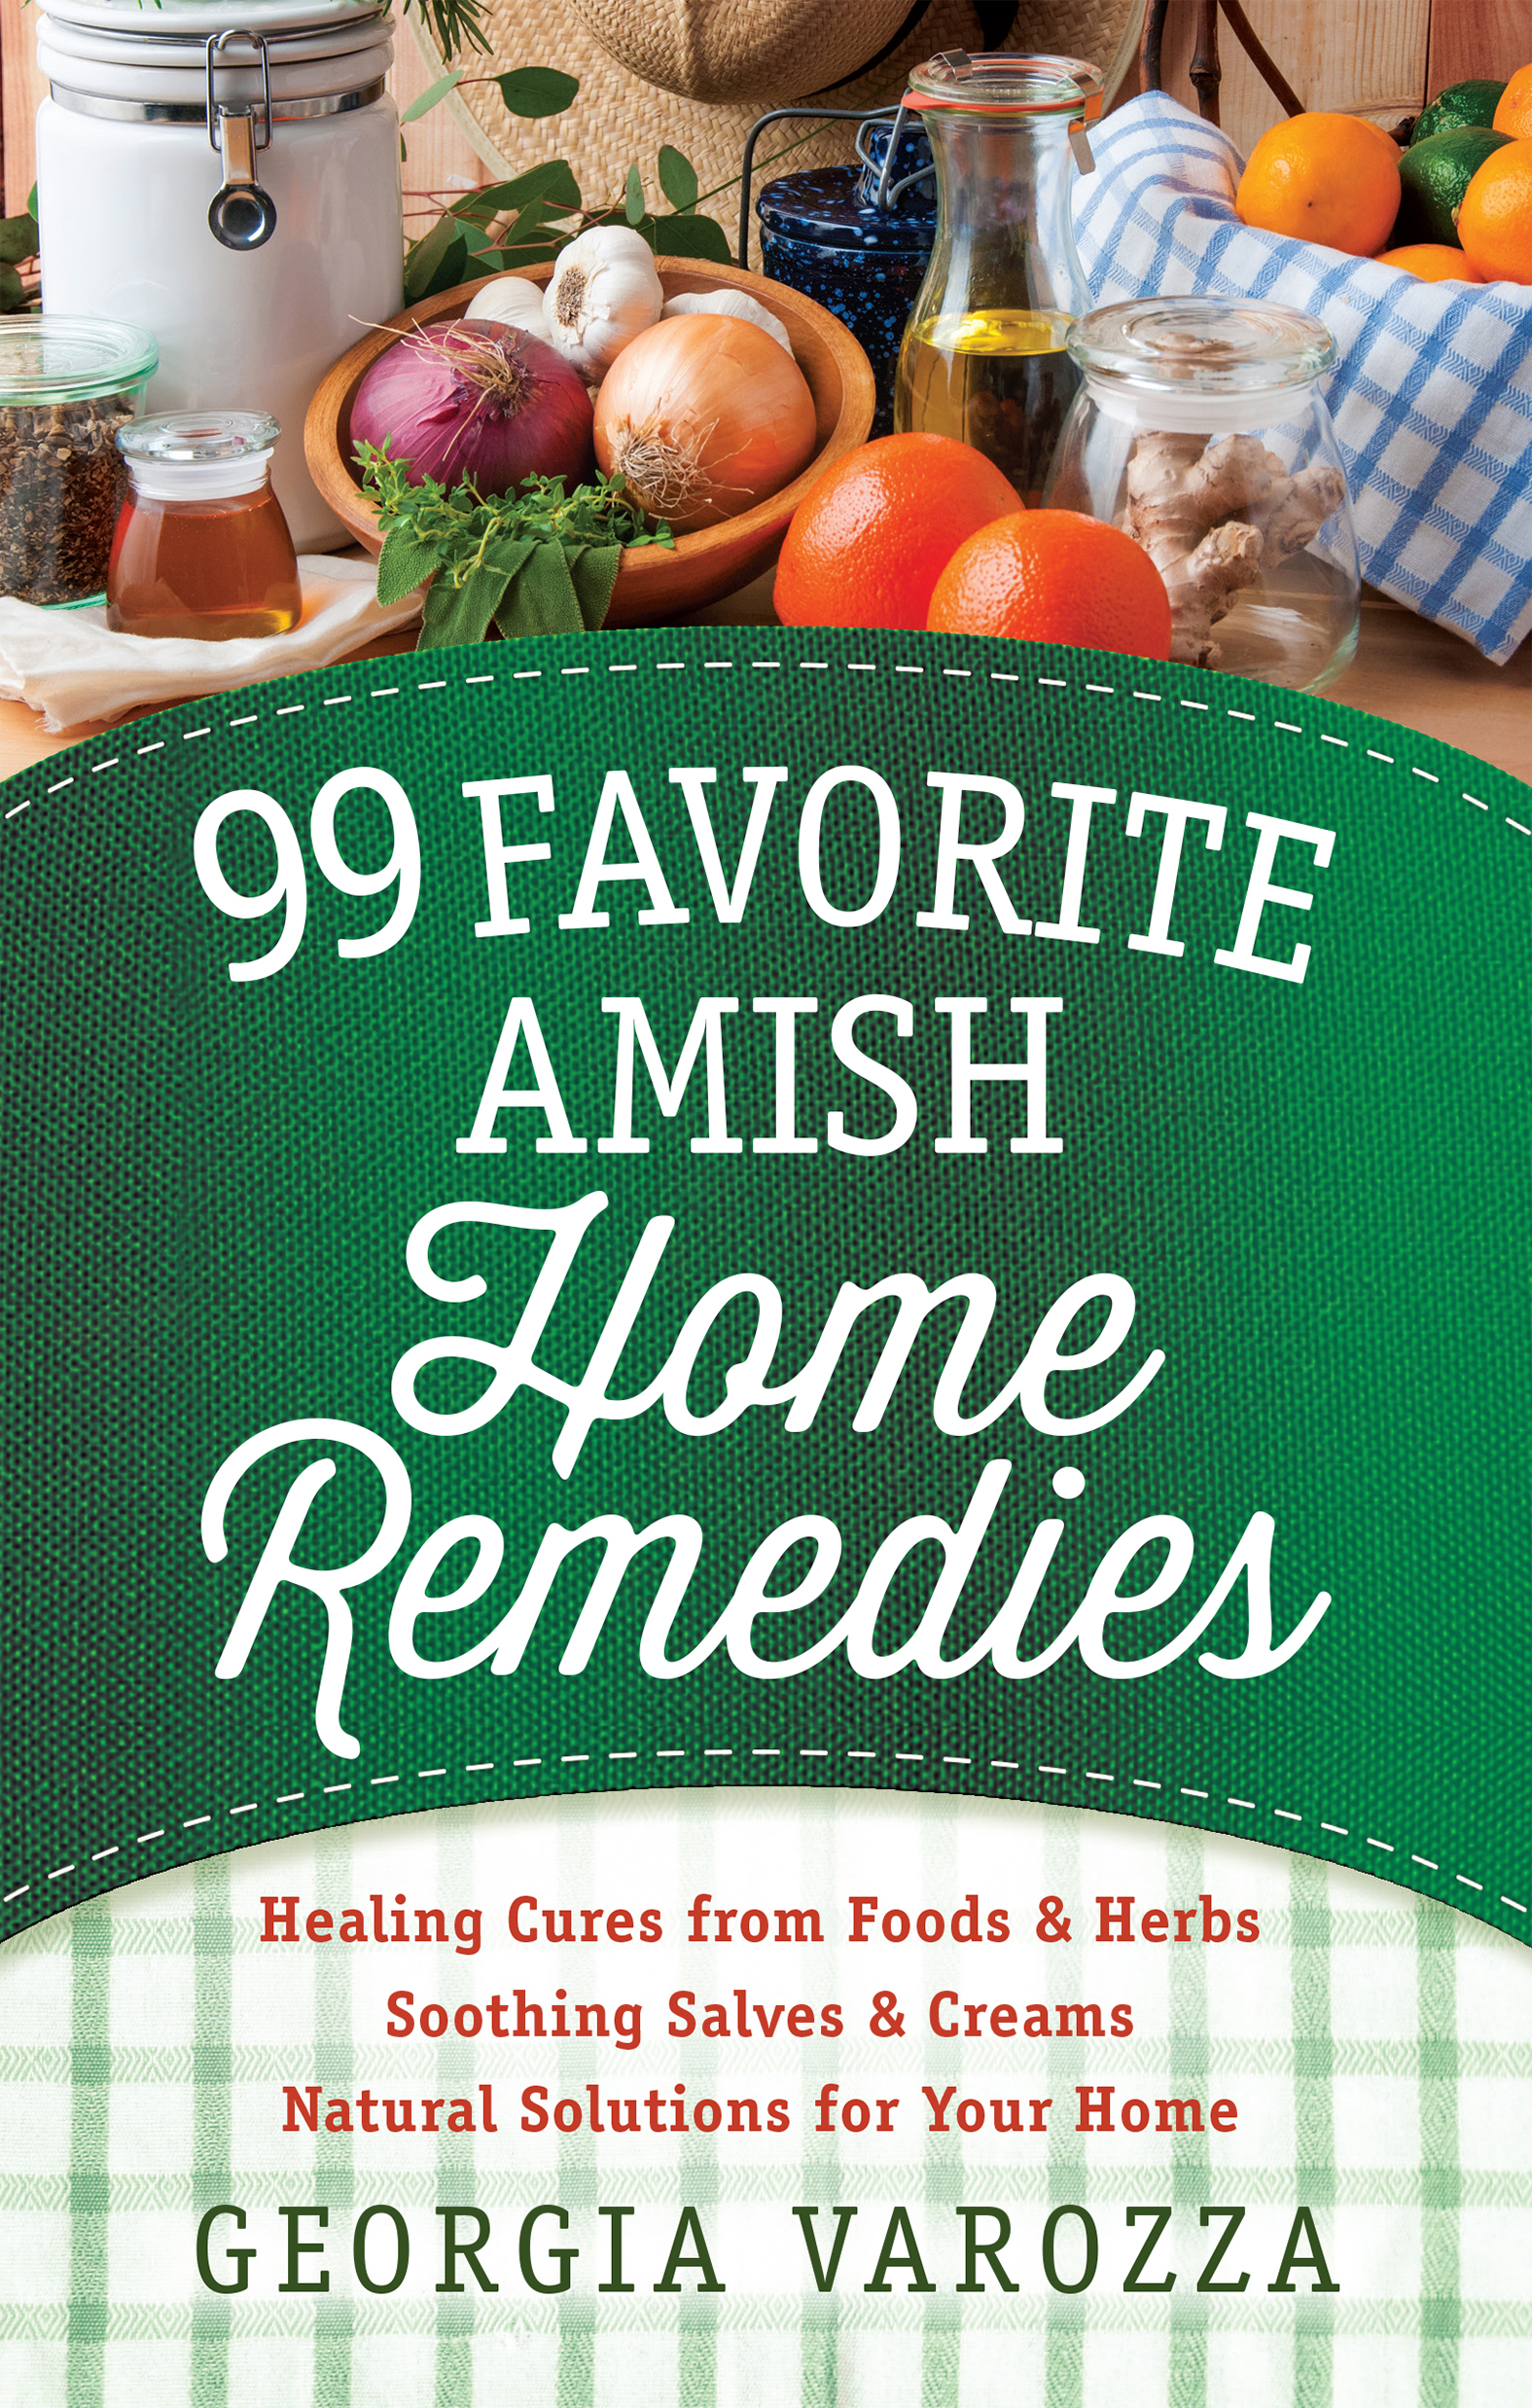 99 Favorite Amish Home Remedies *Healing Cures from Foods and Herbs *Soothing Salves and Creams *Natural Solutions for Your Home